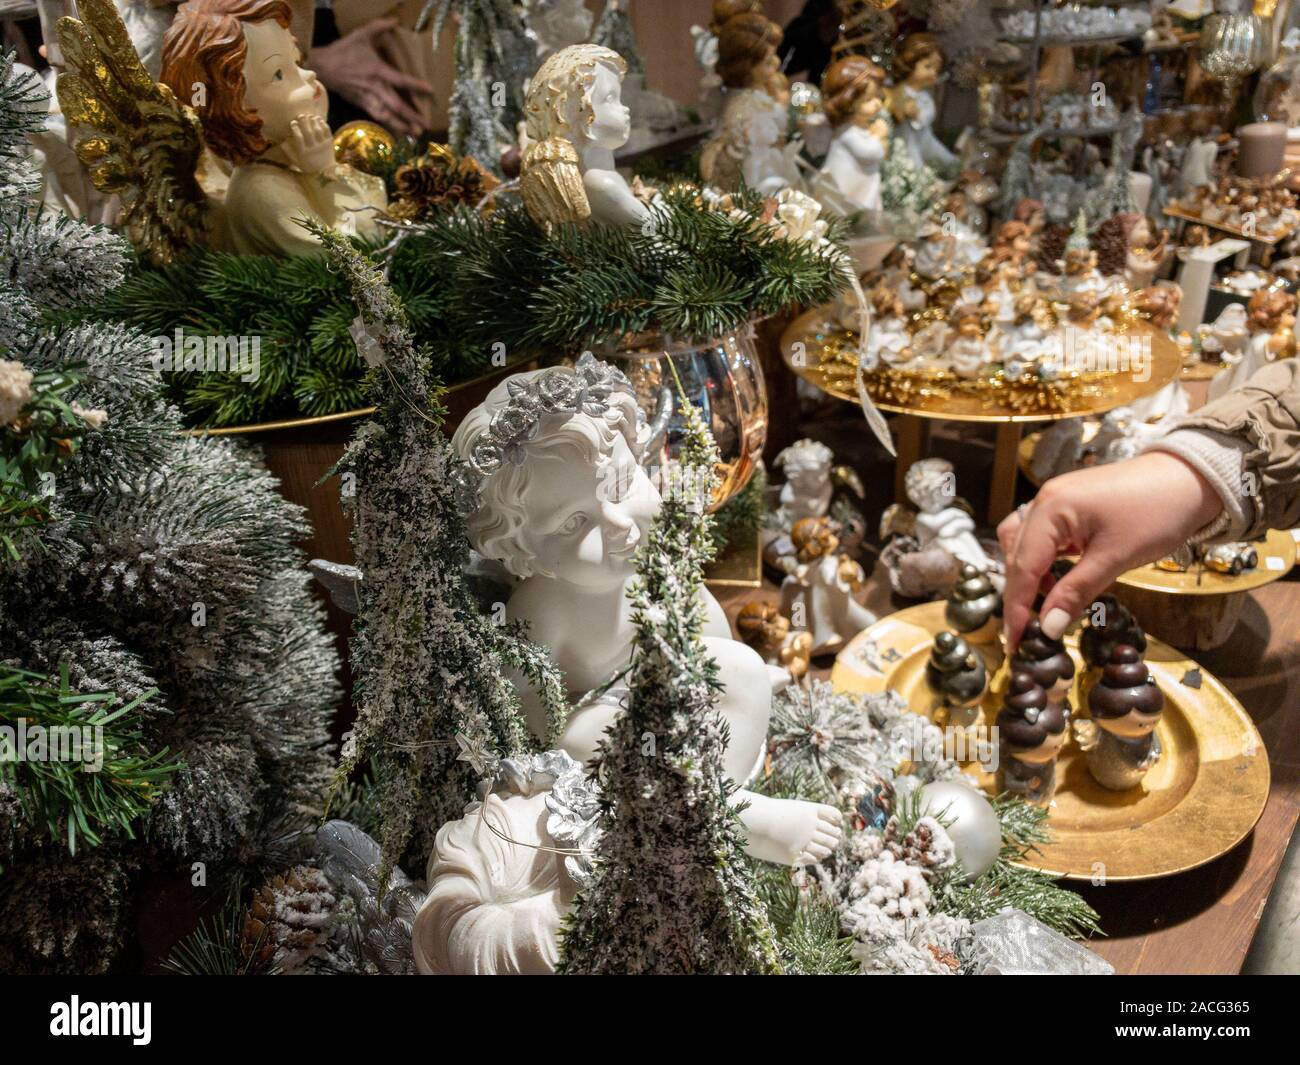 Milan Italy December 1st 2019 Decorations At A Christmas